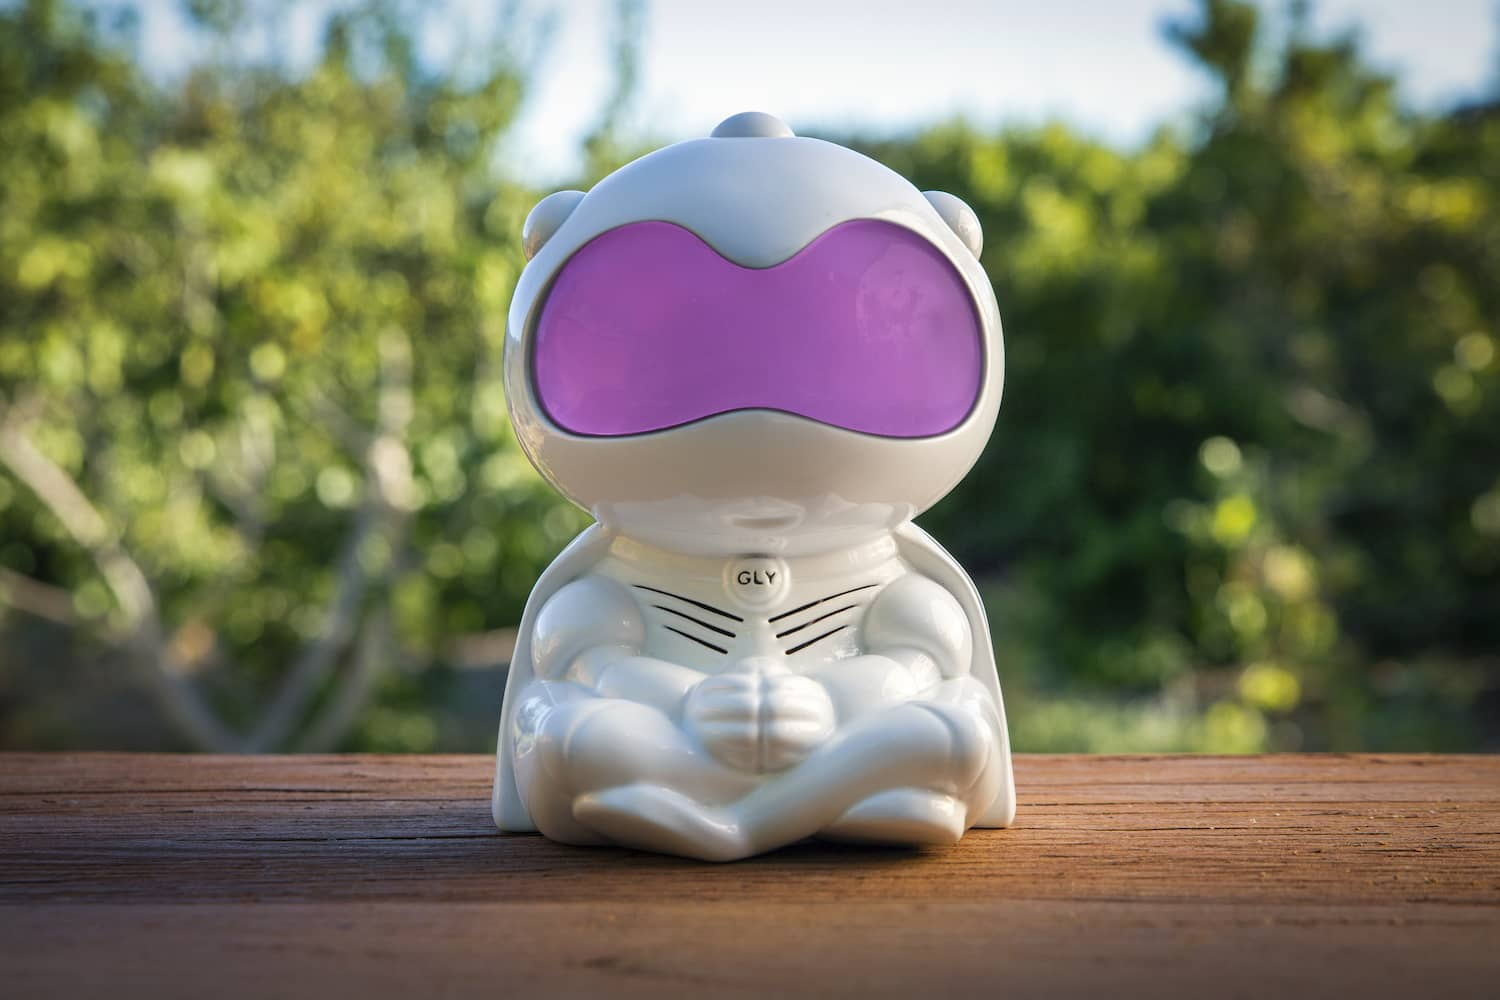 Good Luck Yogi Meditation Toy for Kids to Teach Resilience and Overcome Adverse Childhood Experiences